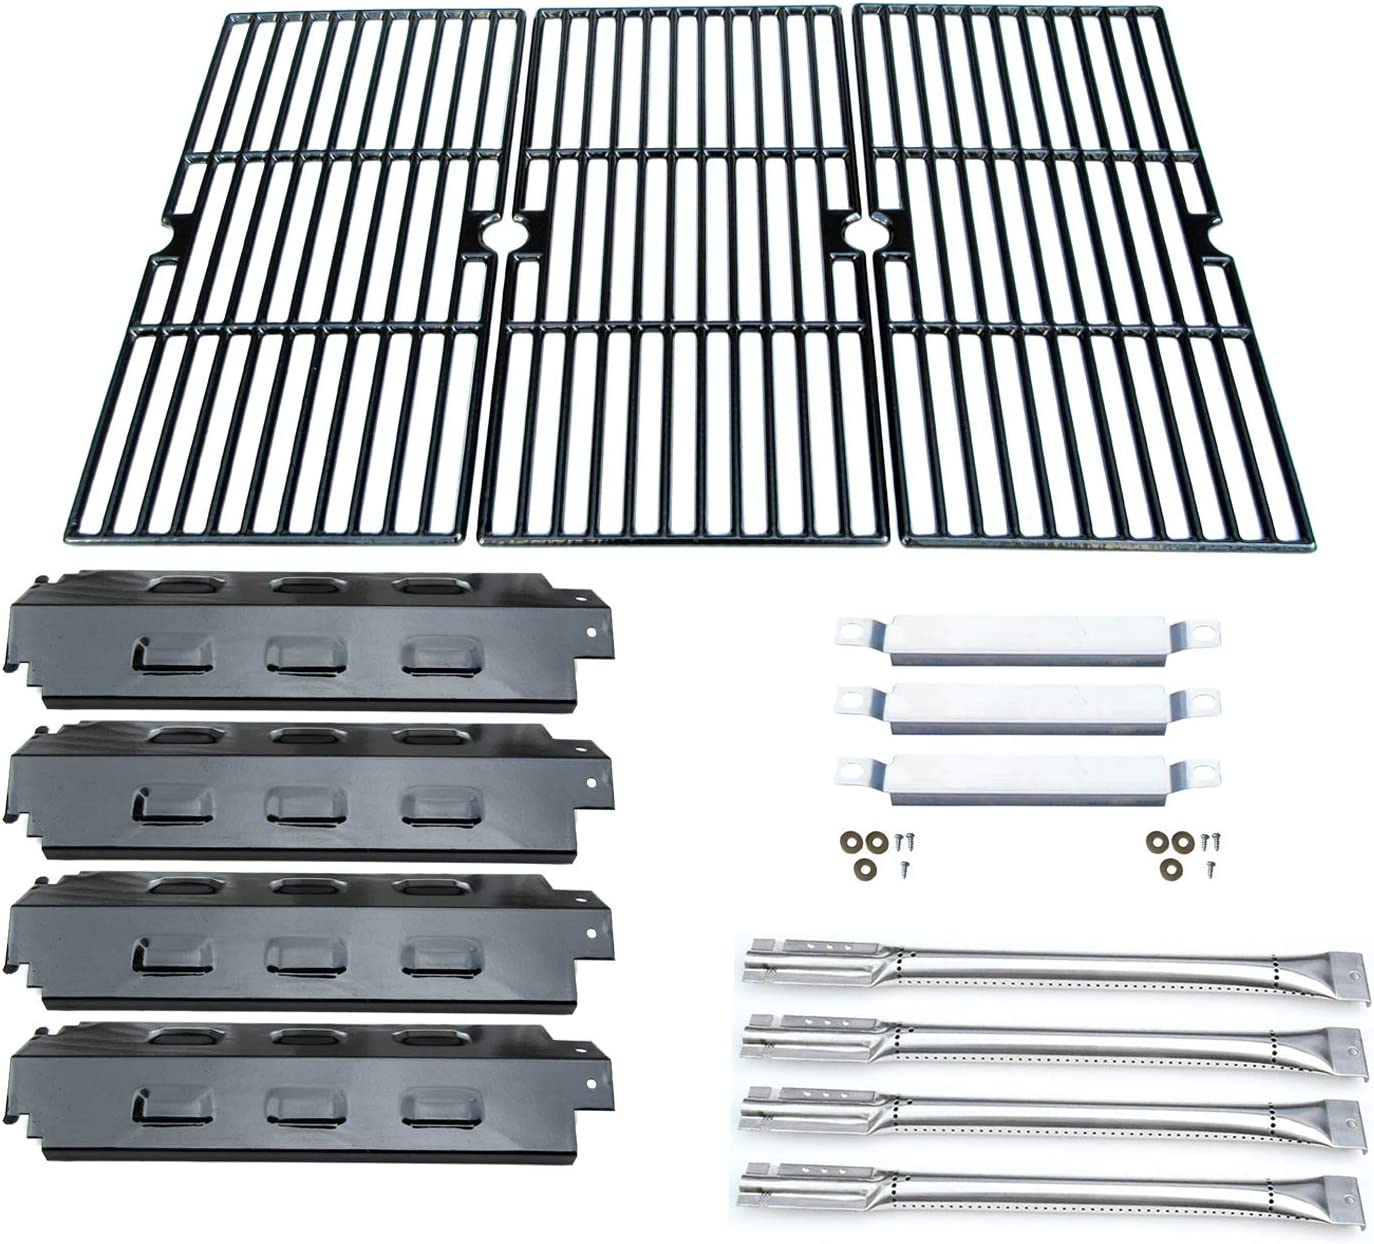 Direct Store Parts 5 popular All items free shipping Kit DG158 Replacement 463420507 Charbroil for